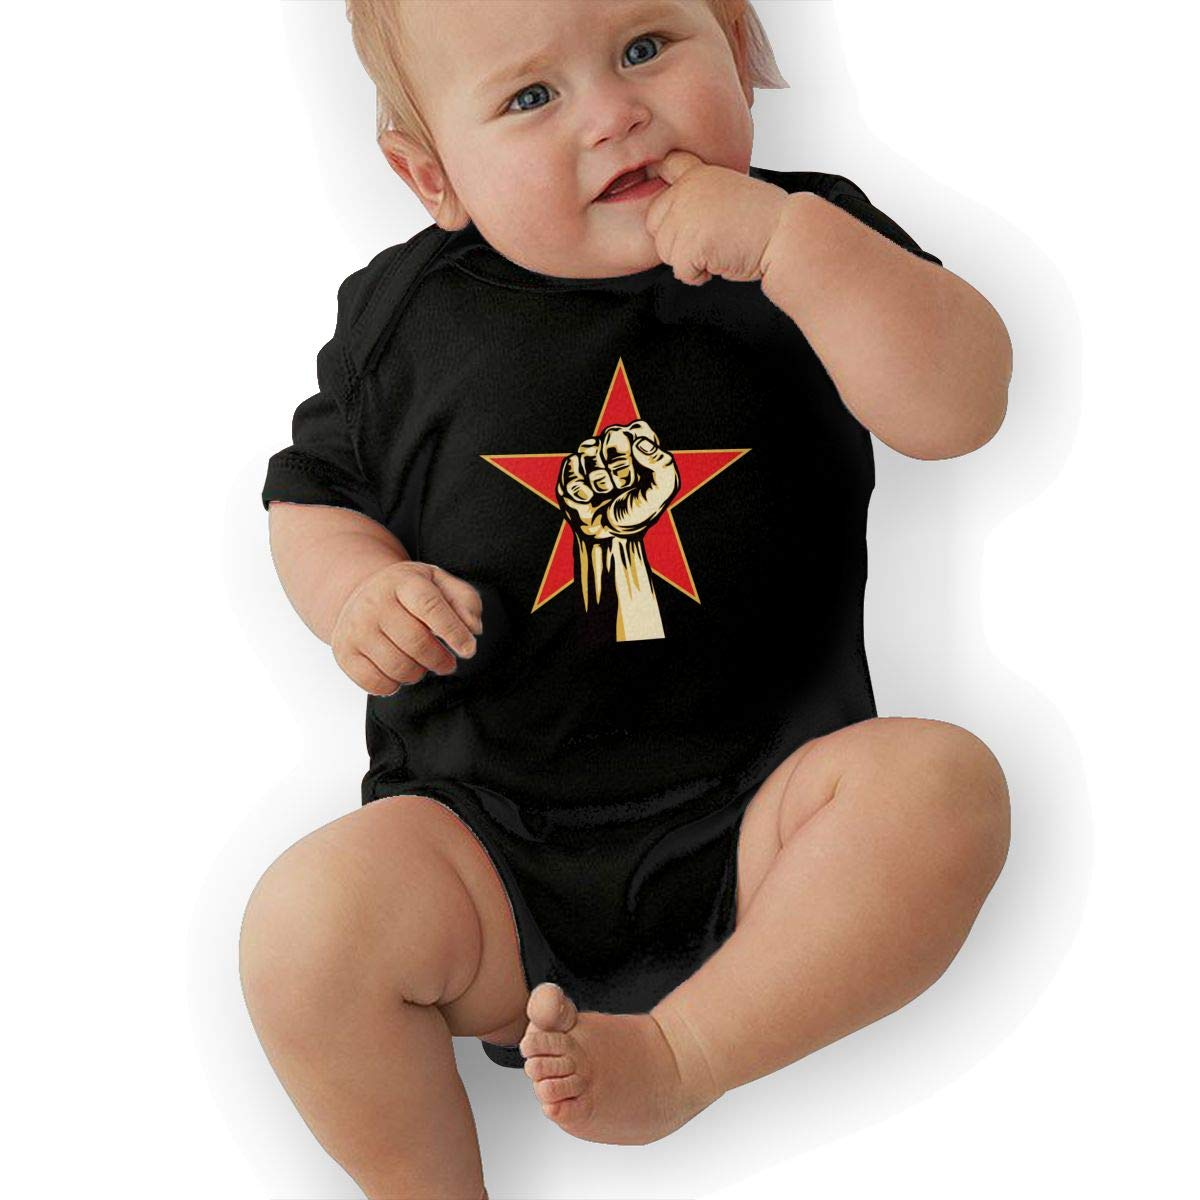 HappyLifea Rage Against The Machine Baby Pajamas Bodysuits Clothes Onesies Jumpsuits Outfits Black